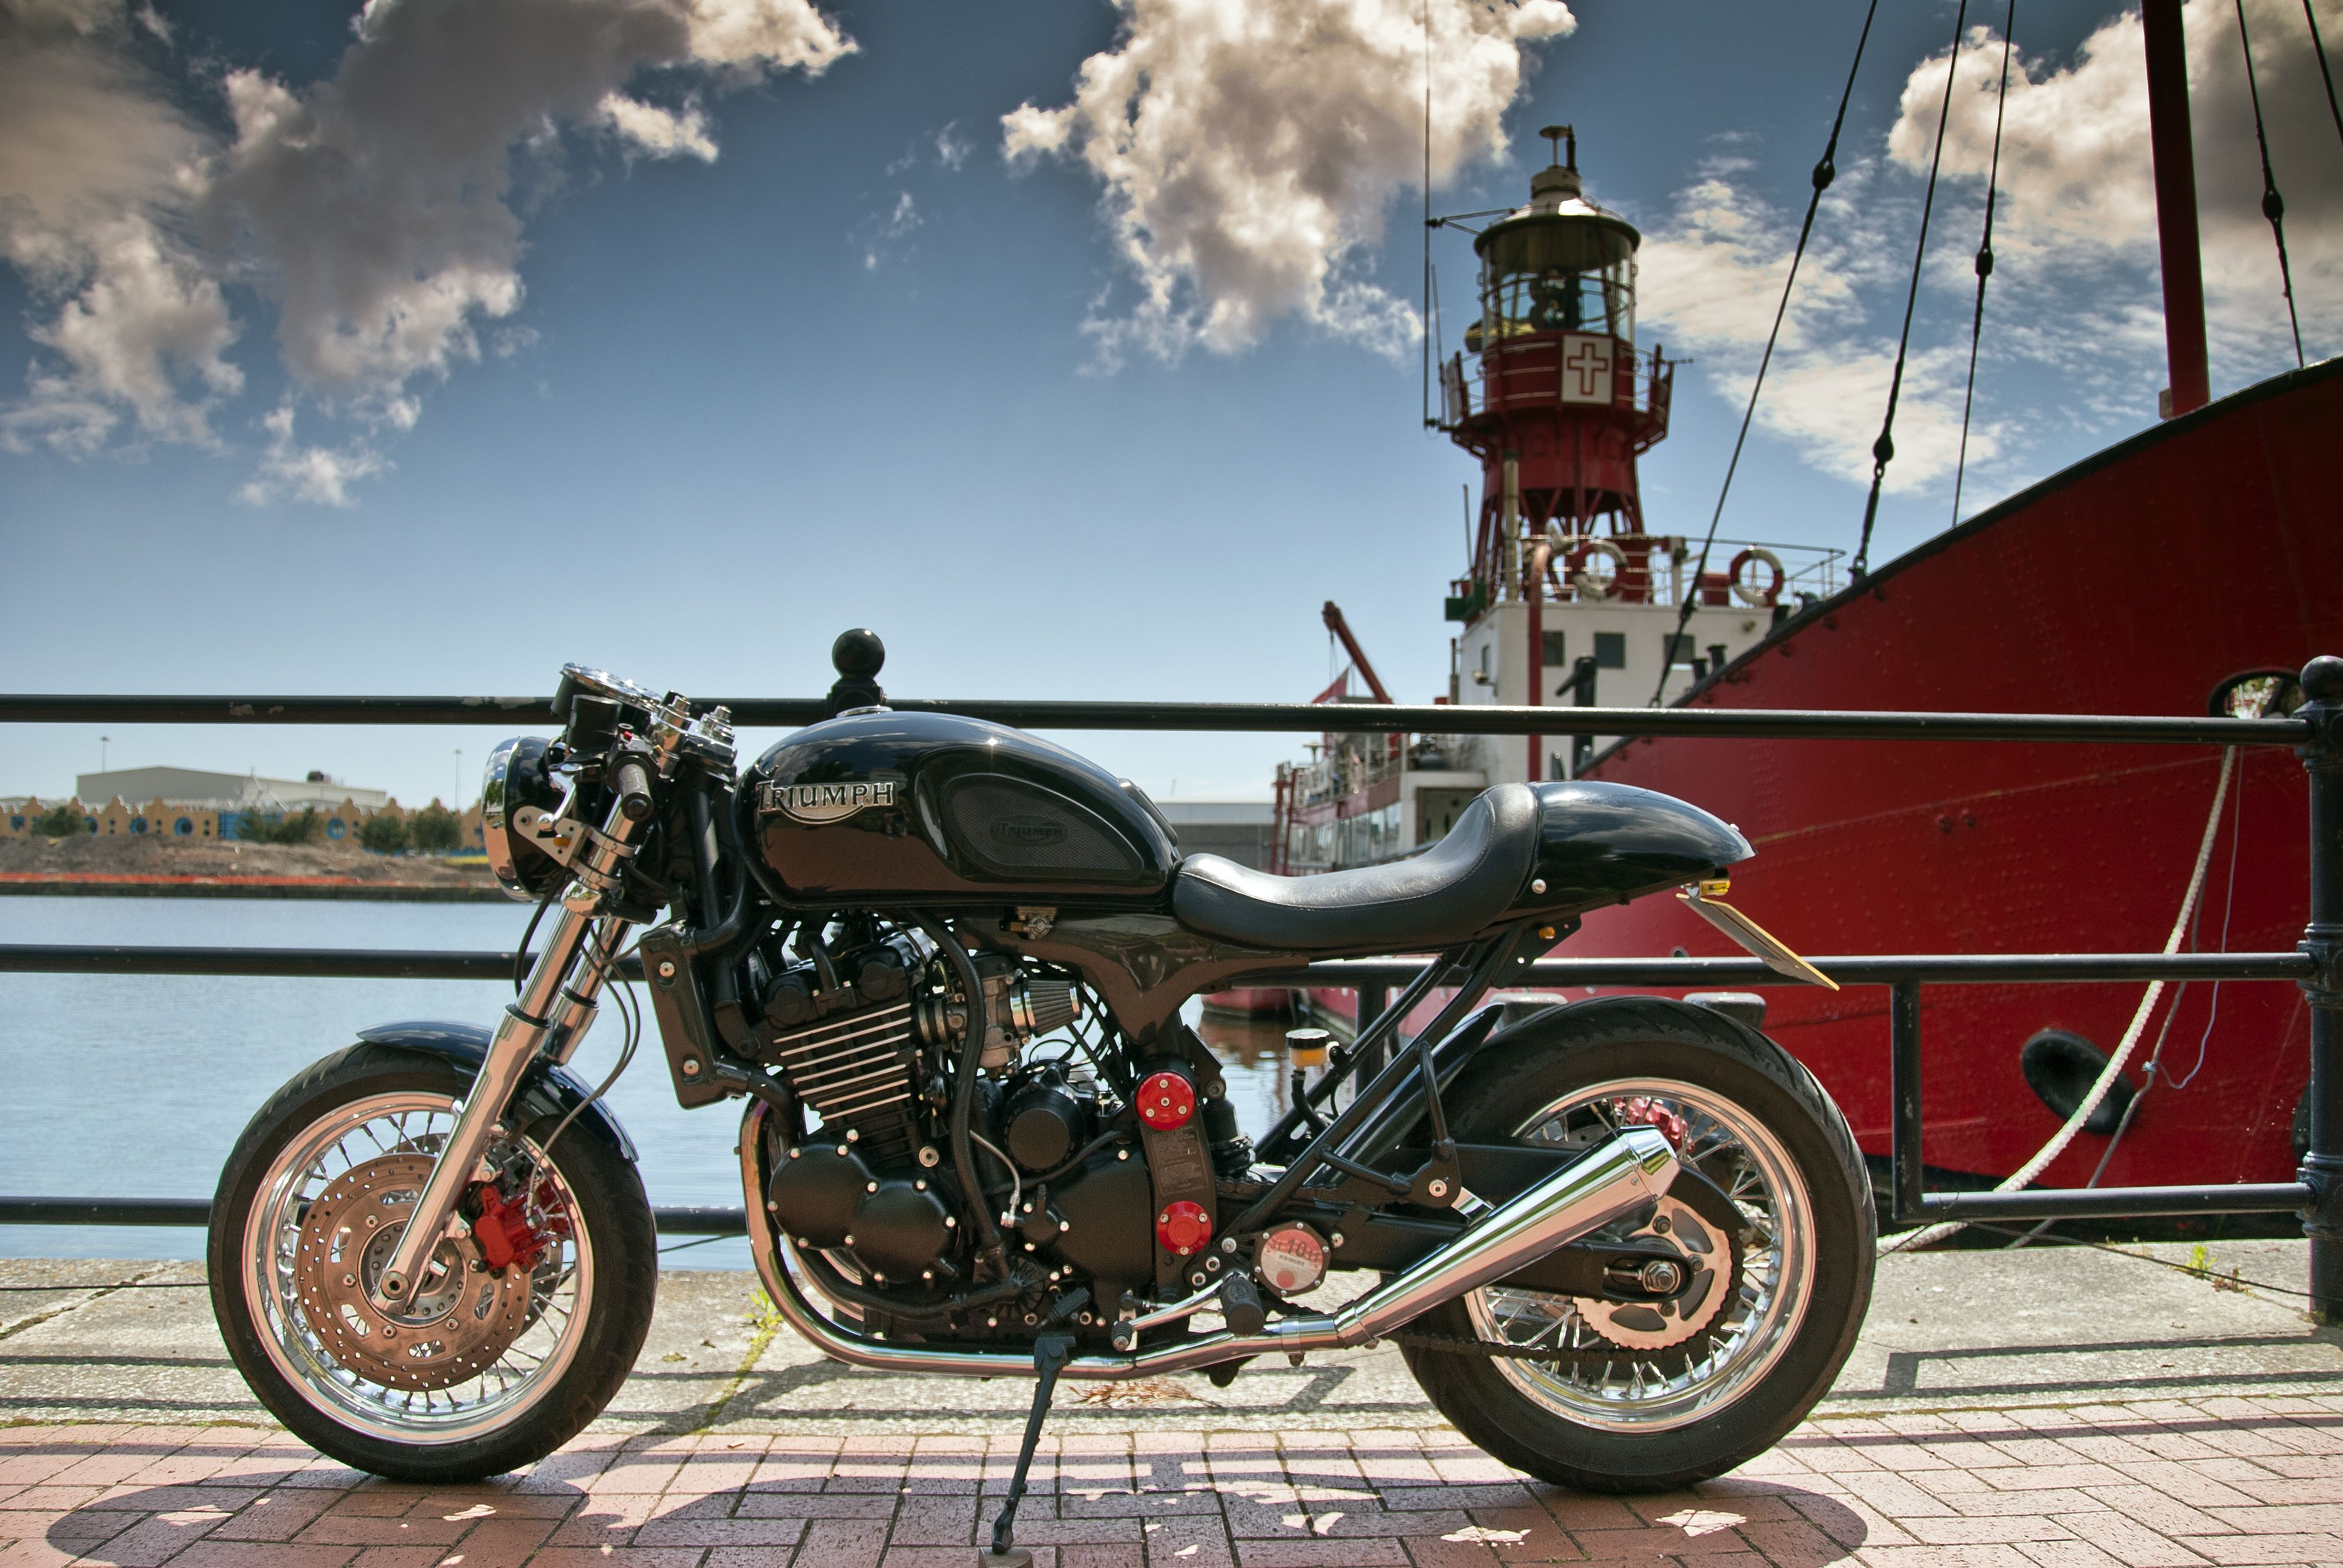 Bobber Cafe Racer Harley Davidson Hd Wallpaper 1080p: 1 Triumph Thunderbird Cafe Racer HD Wallpapers